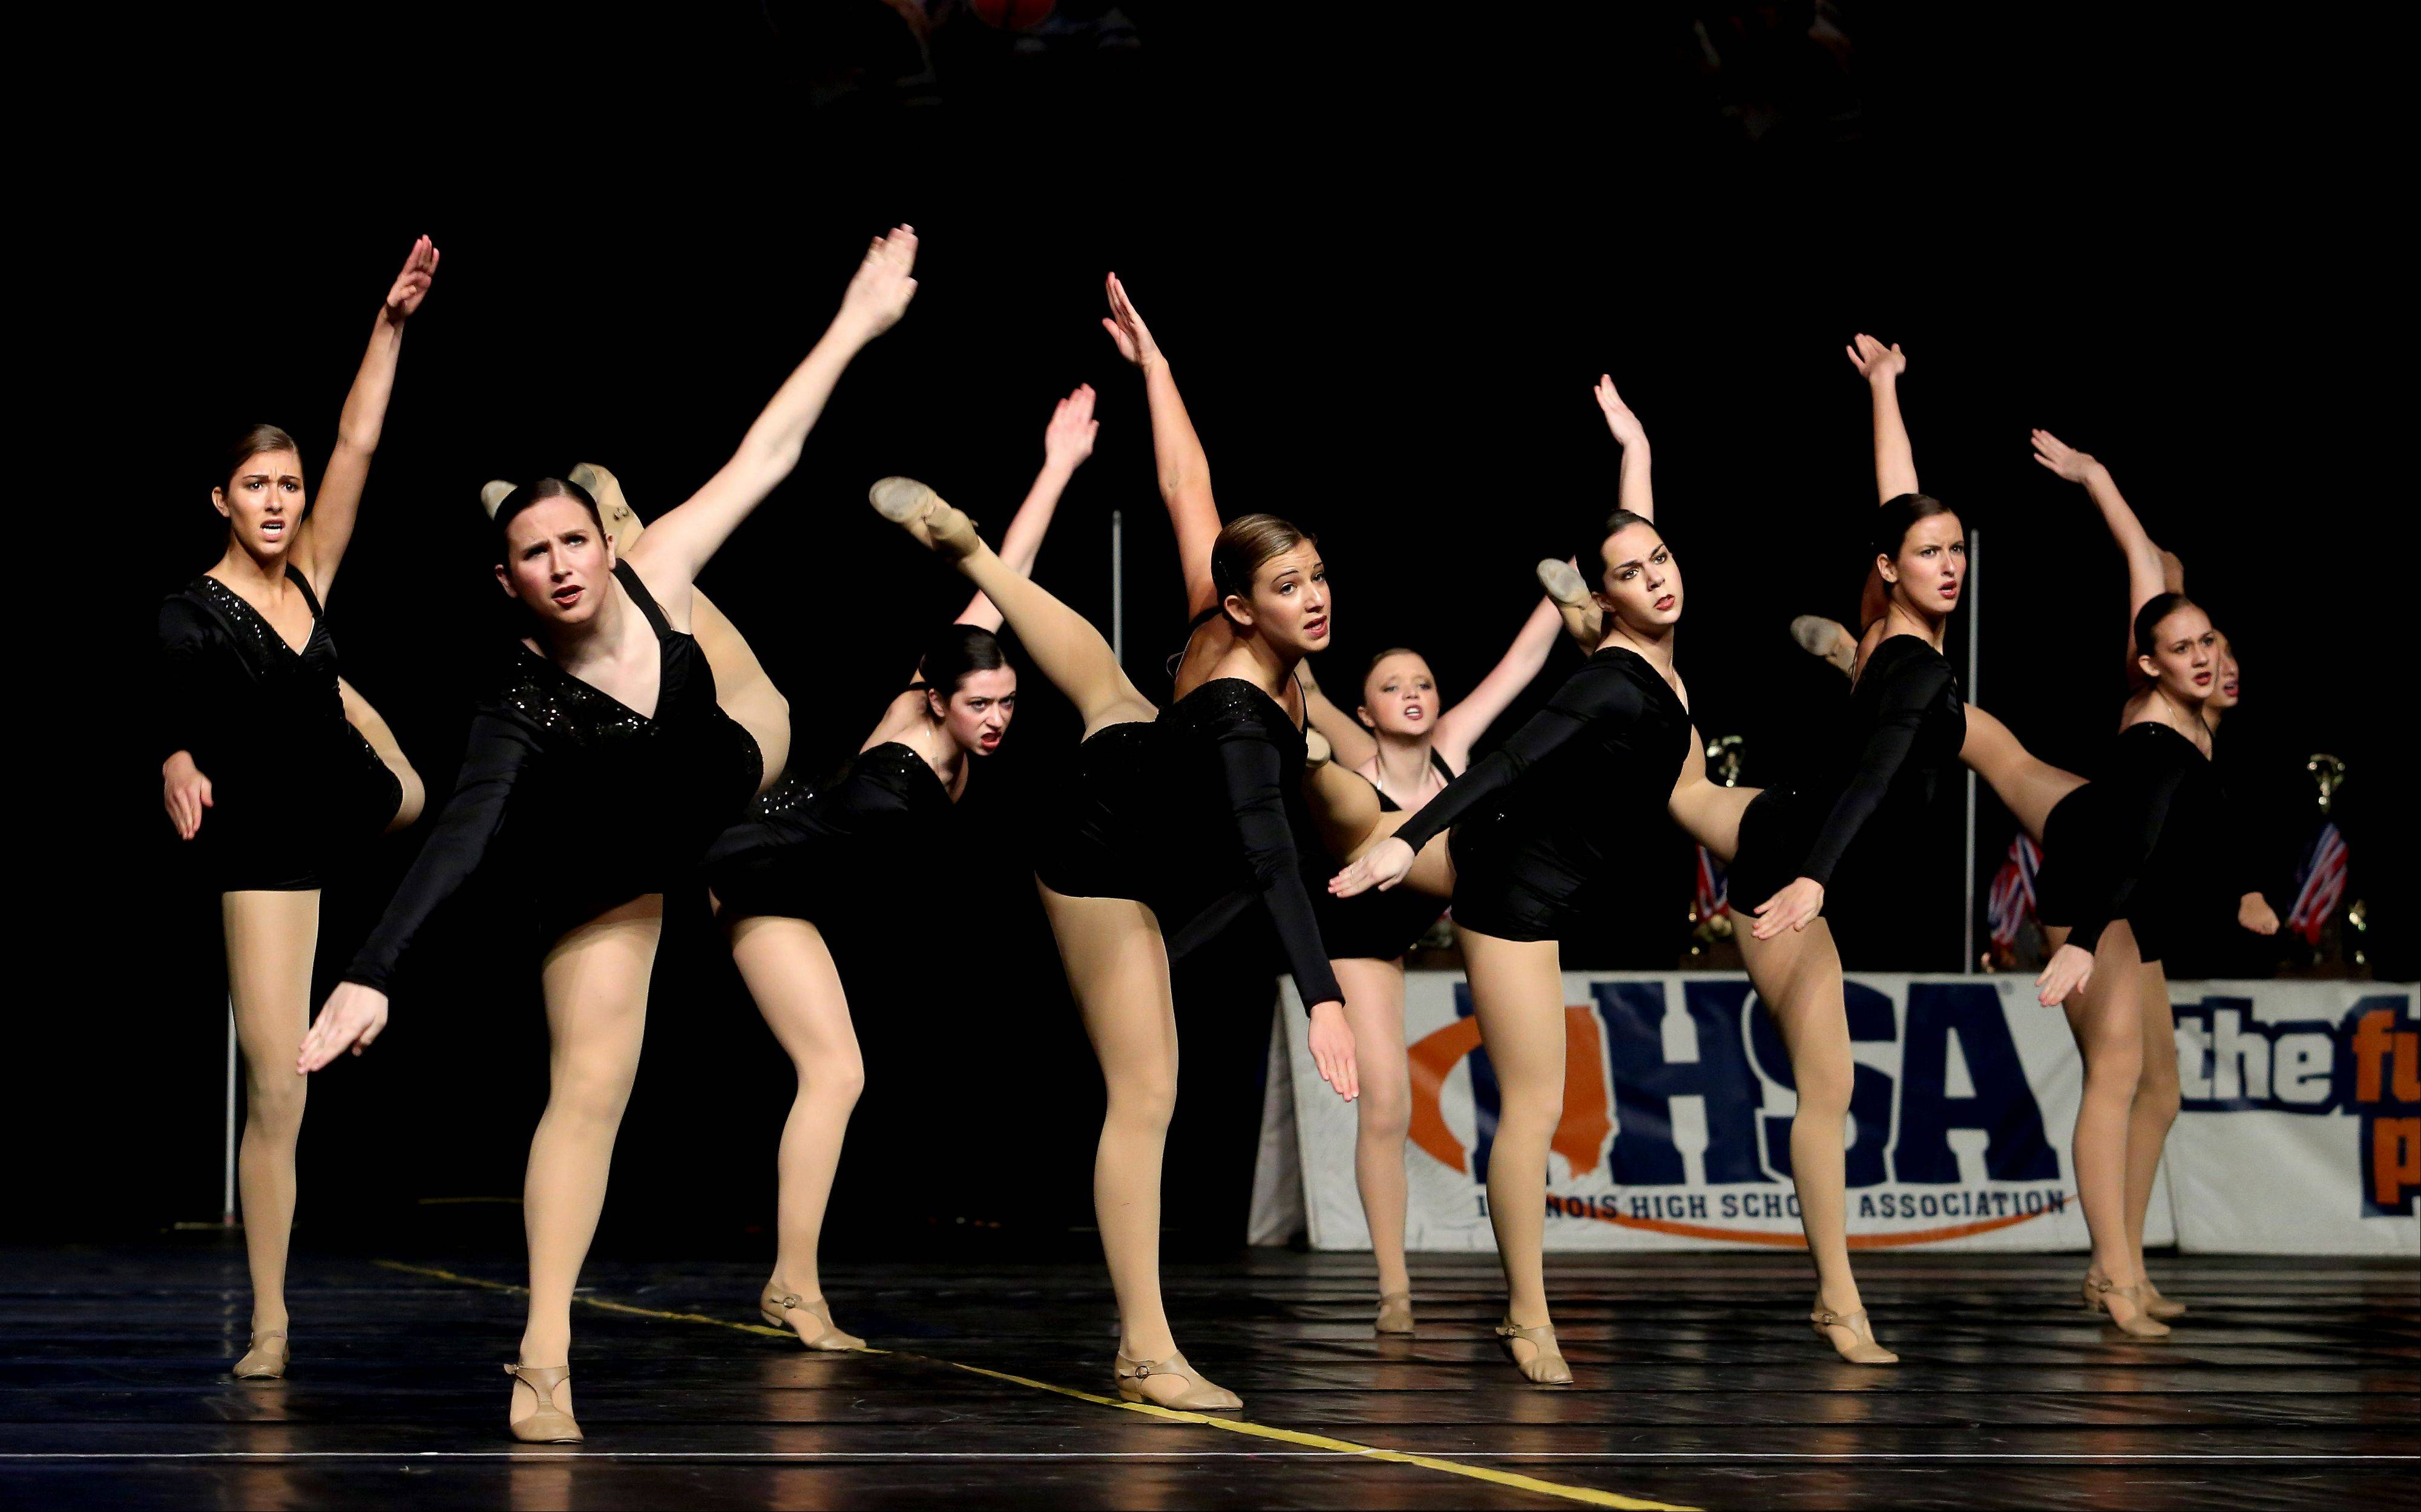 Stevenson High School competes in the state dance preliminaries on Friday in Bloomington. The Lincolnshire school advanced to the Division 3A finals.